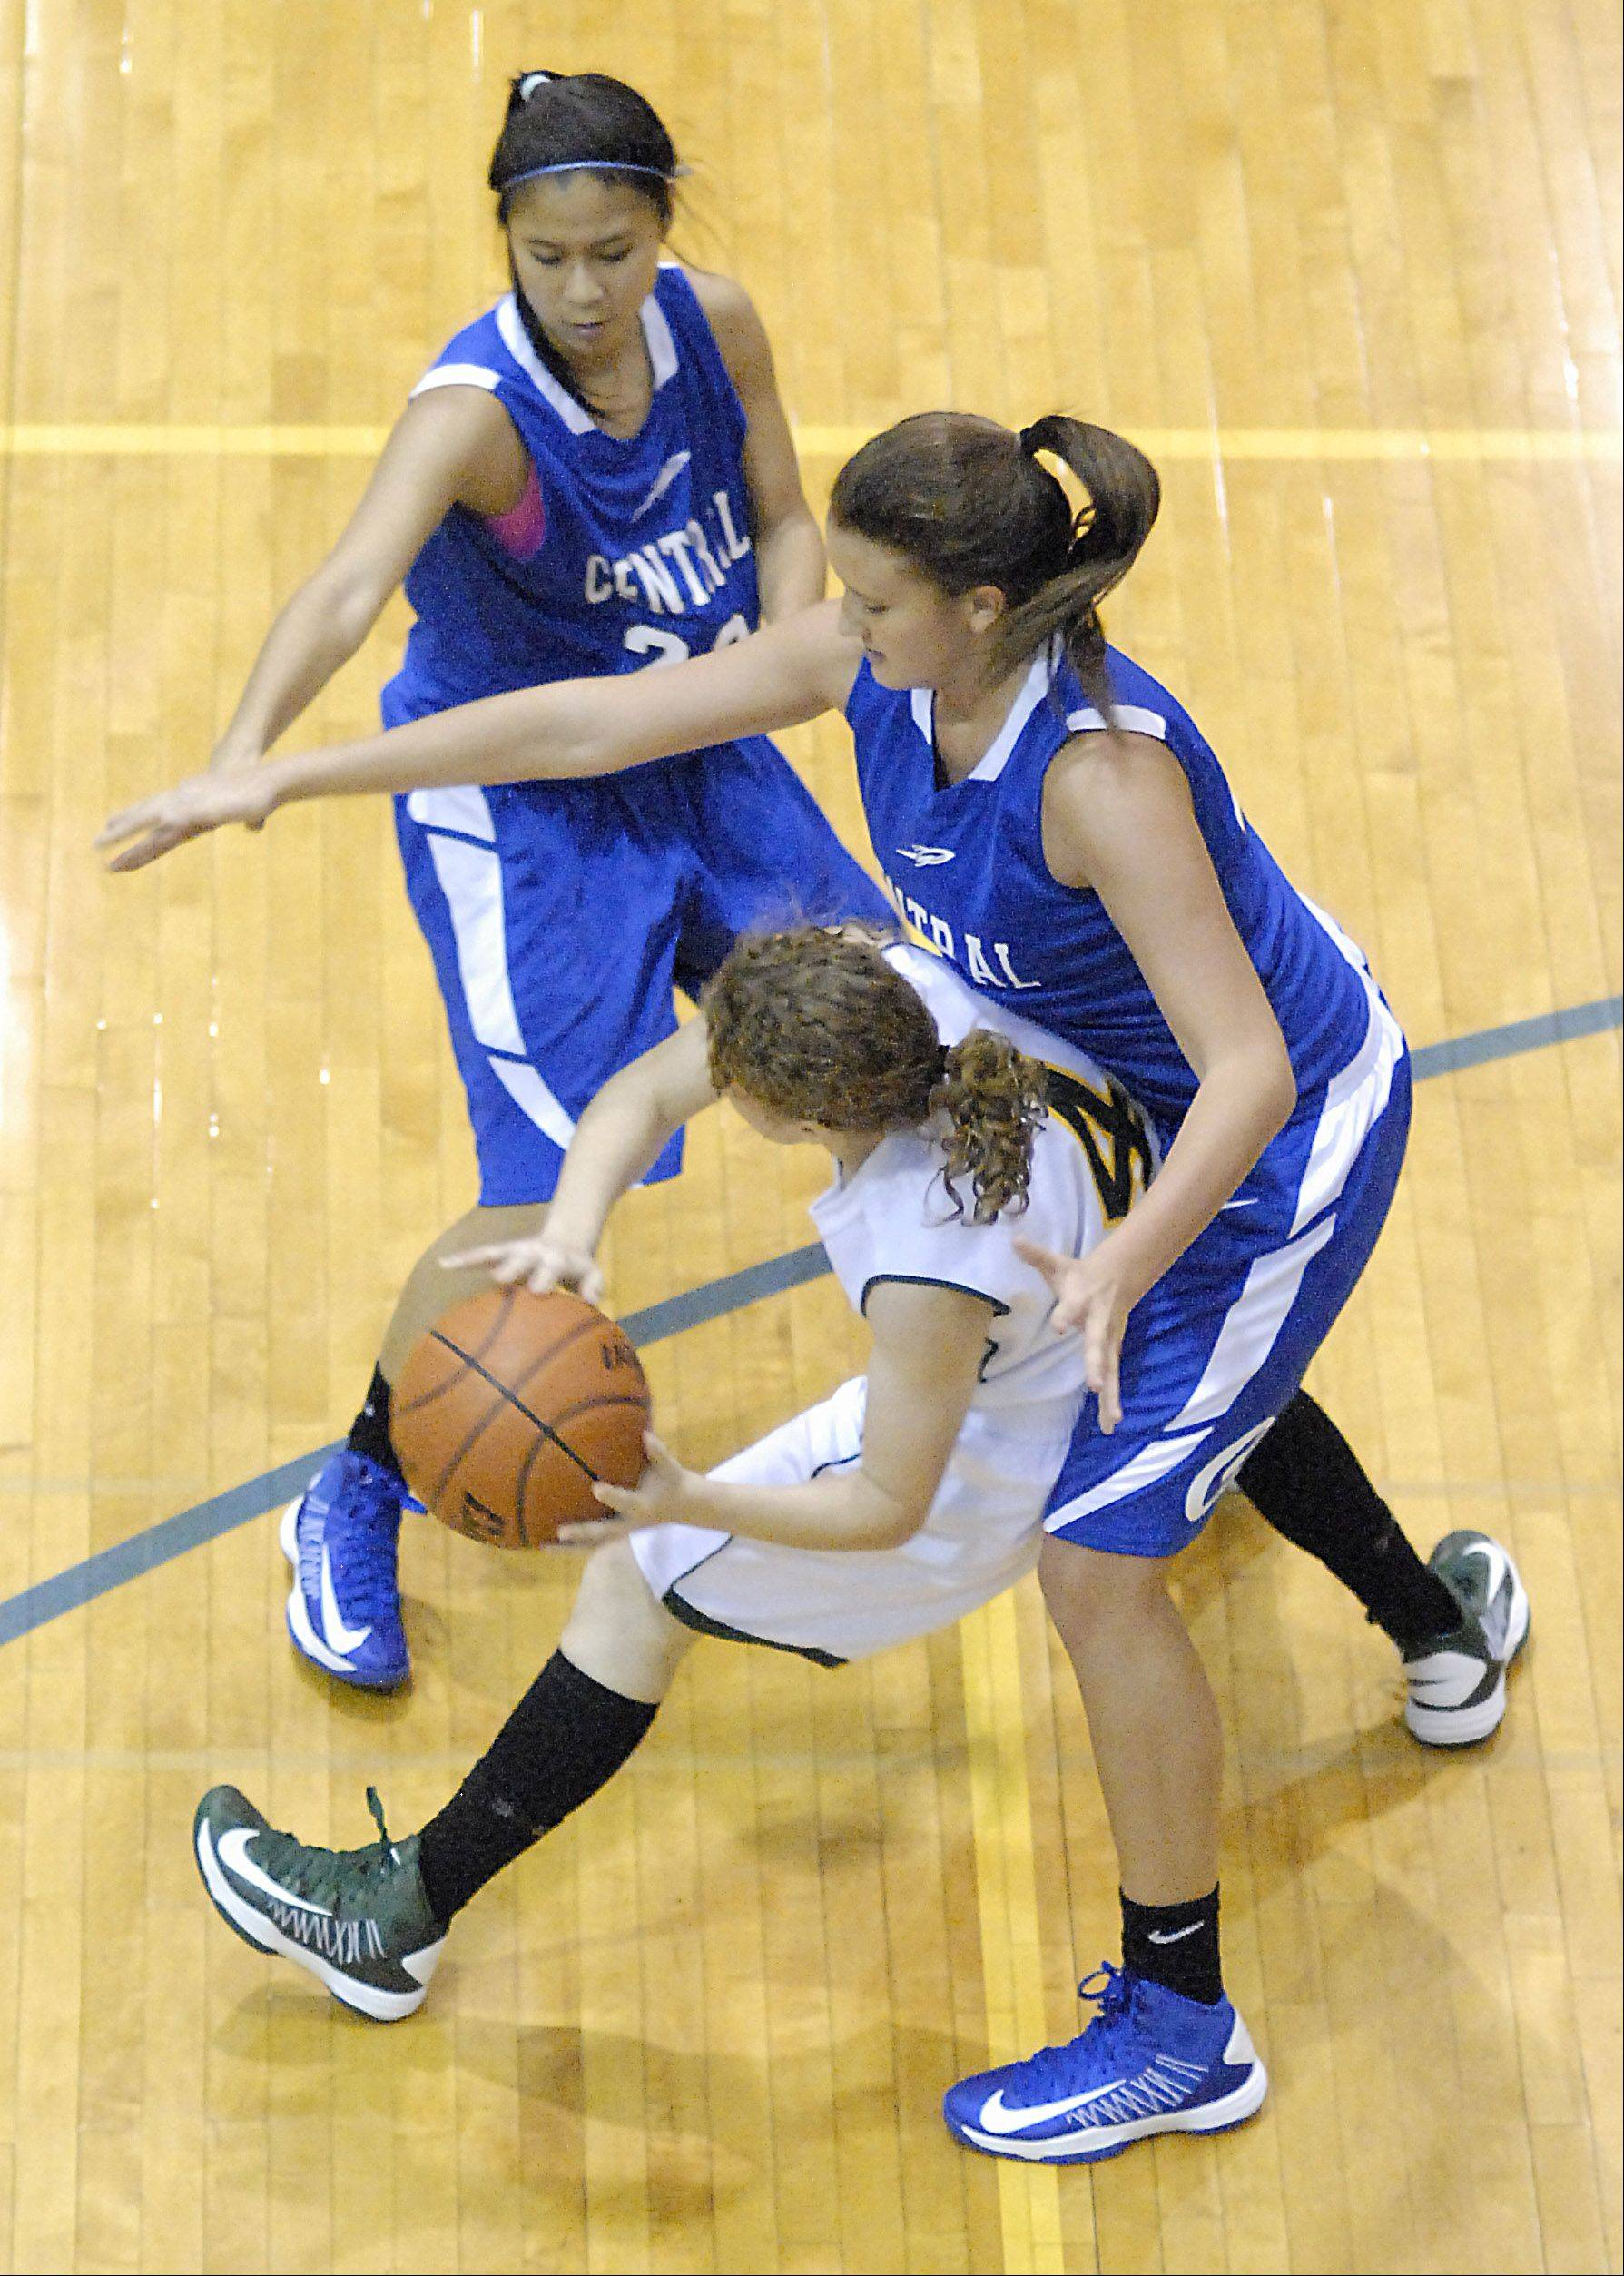 Burlington Central's Camille Delacruz and Alison Colby swarm Crystal Lake South's Carina Madoni in the second quarter on Saturday, December 15.